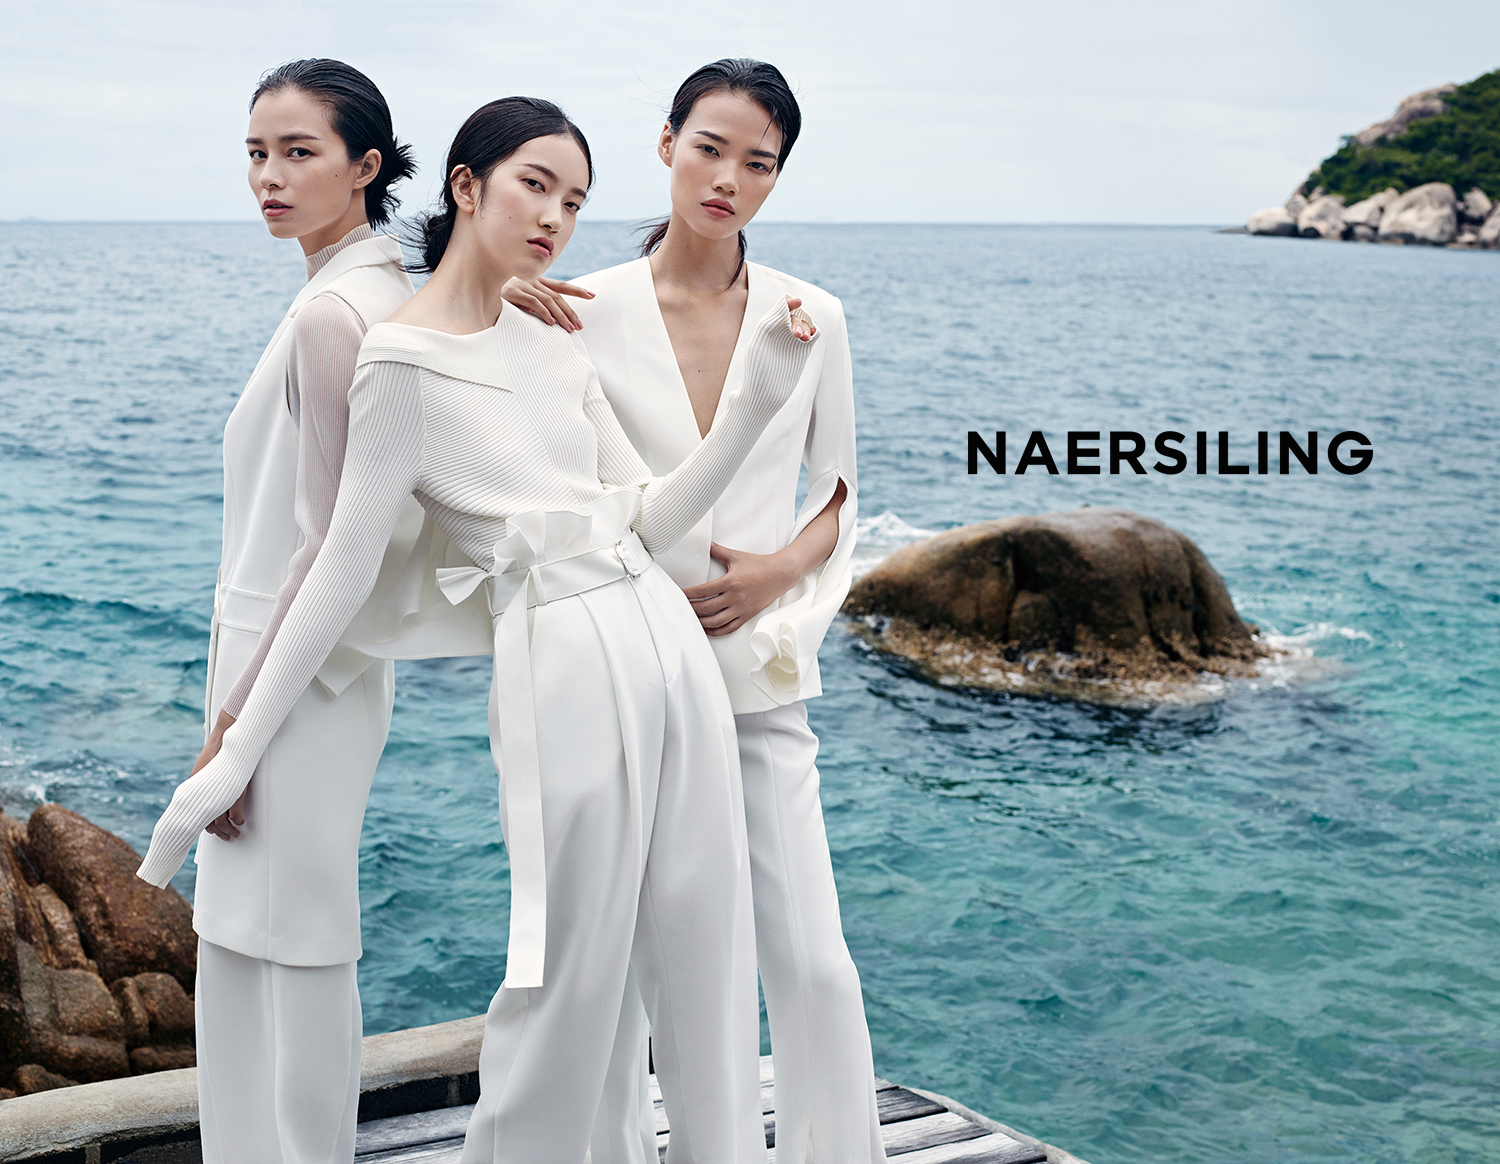 NAERSILING, CHINA'S NEW LUX BRAND, TO DEBUT AT NEW YORK FASHION WEEK THIS SEPTEMBER 2